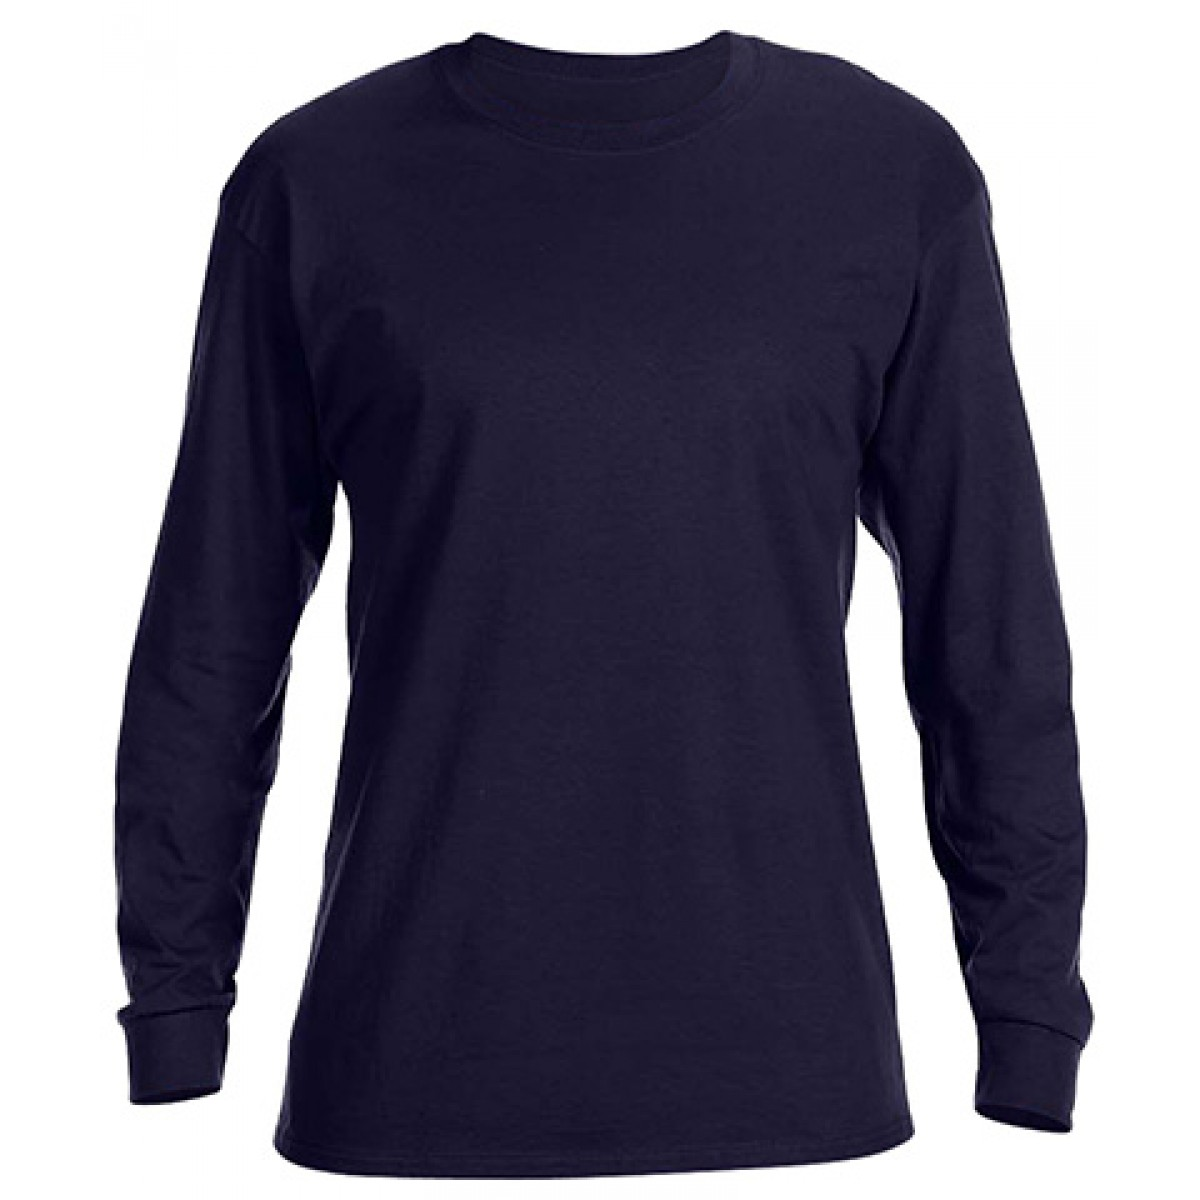 Basic Long Sleeve Crew Neck -Navy-2XL